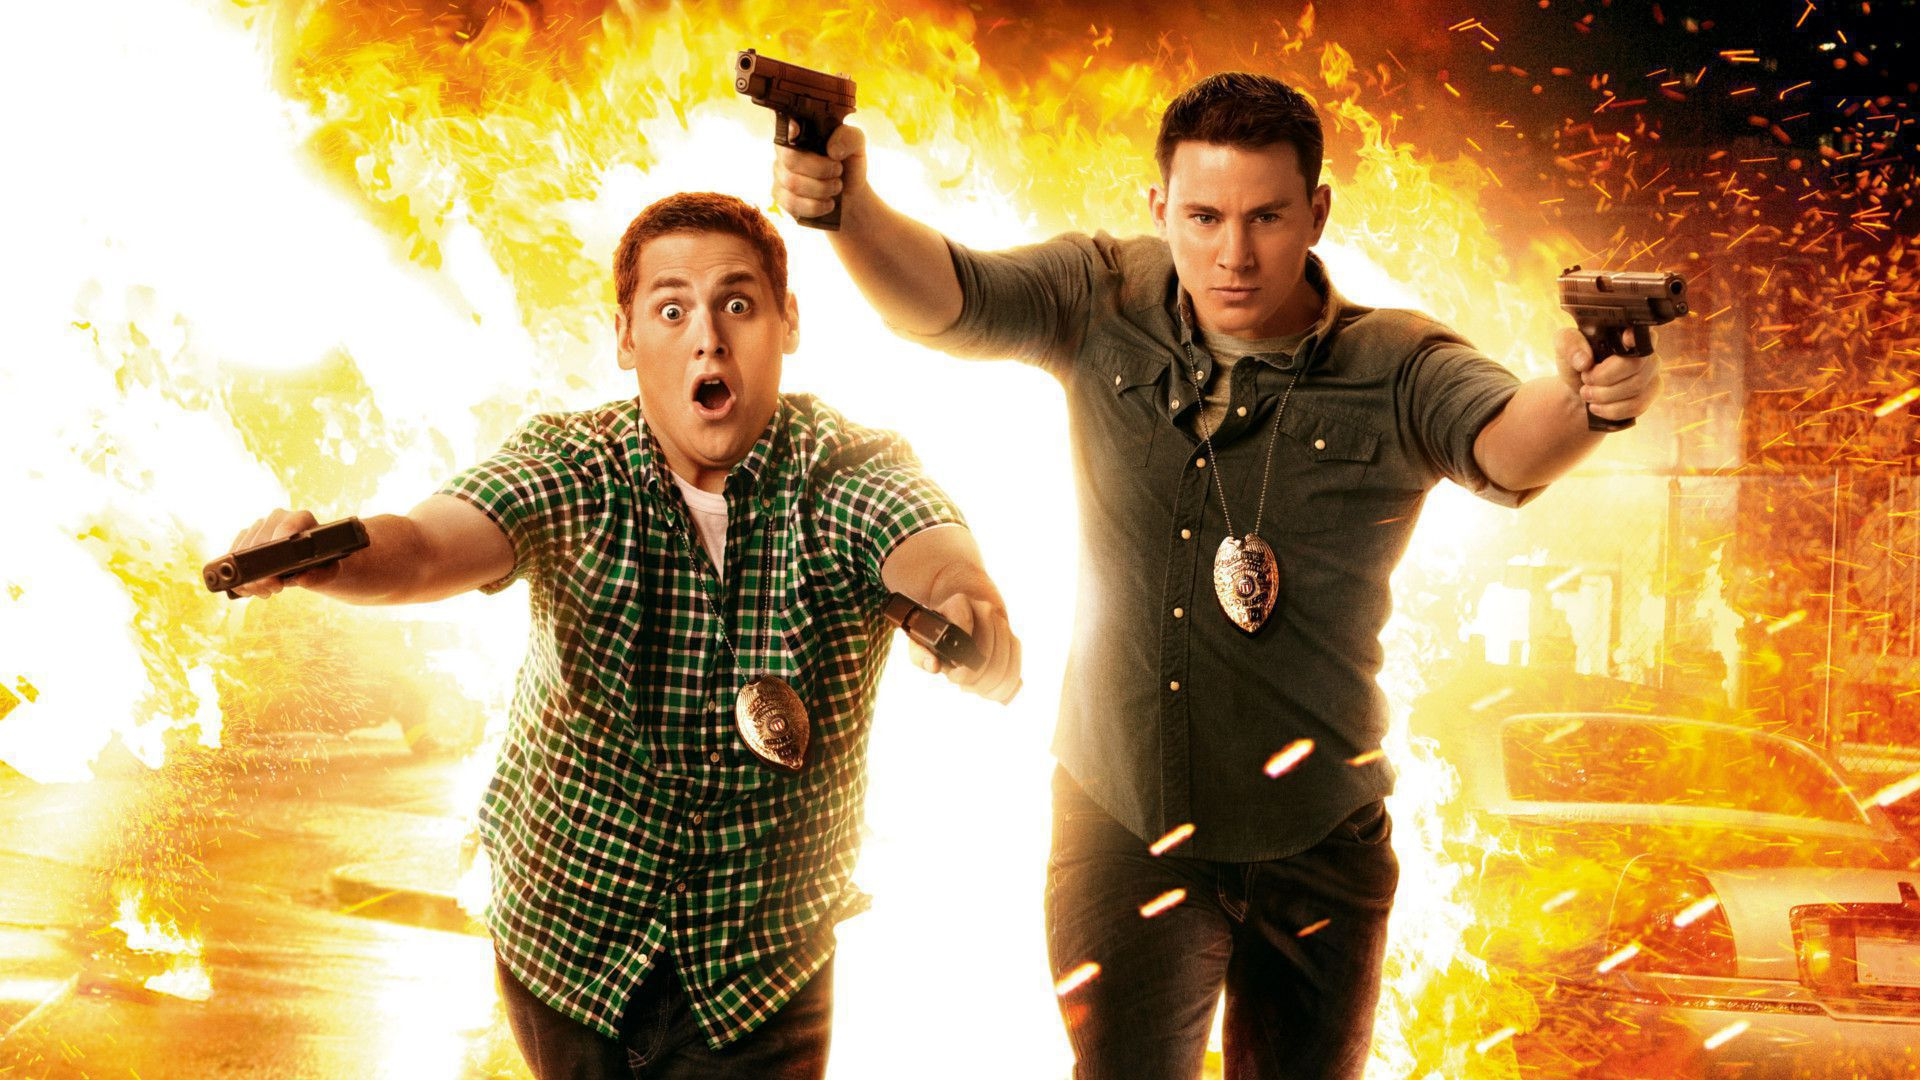 21 Jump Street High Quality Wallpapers